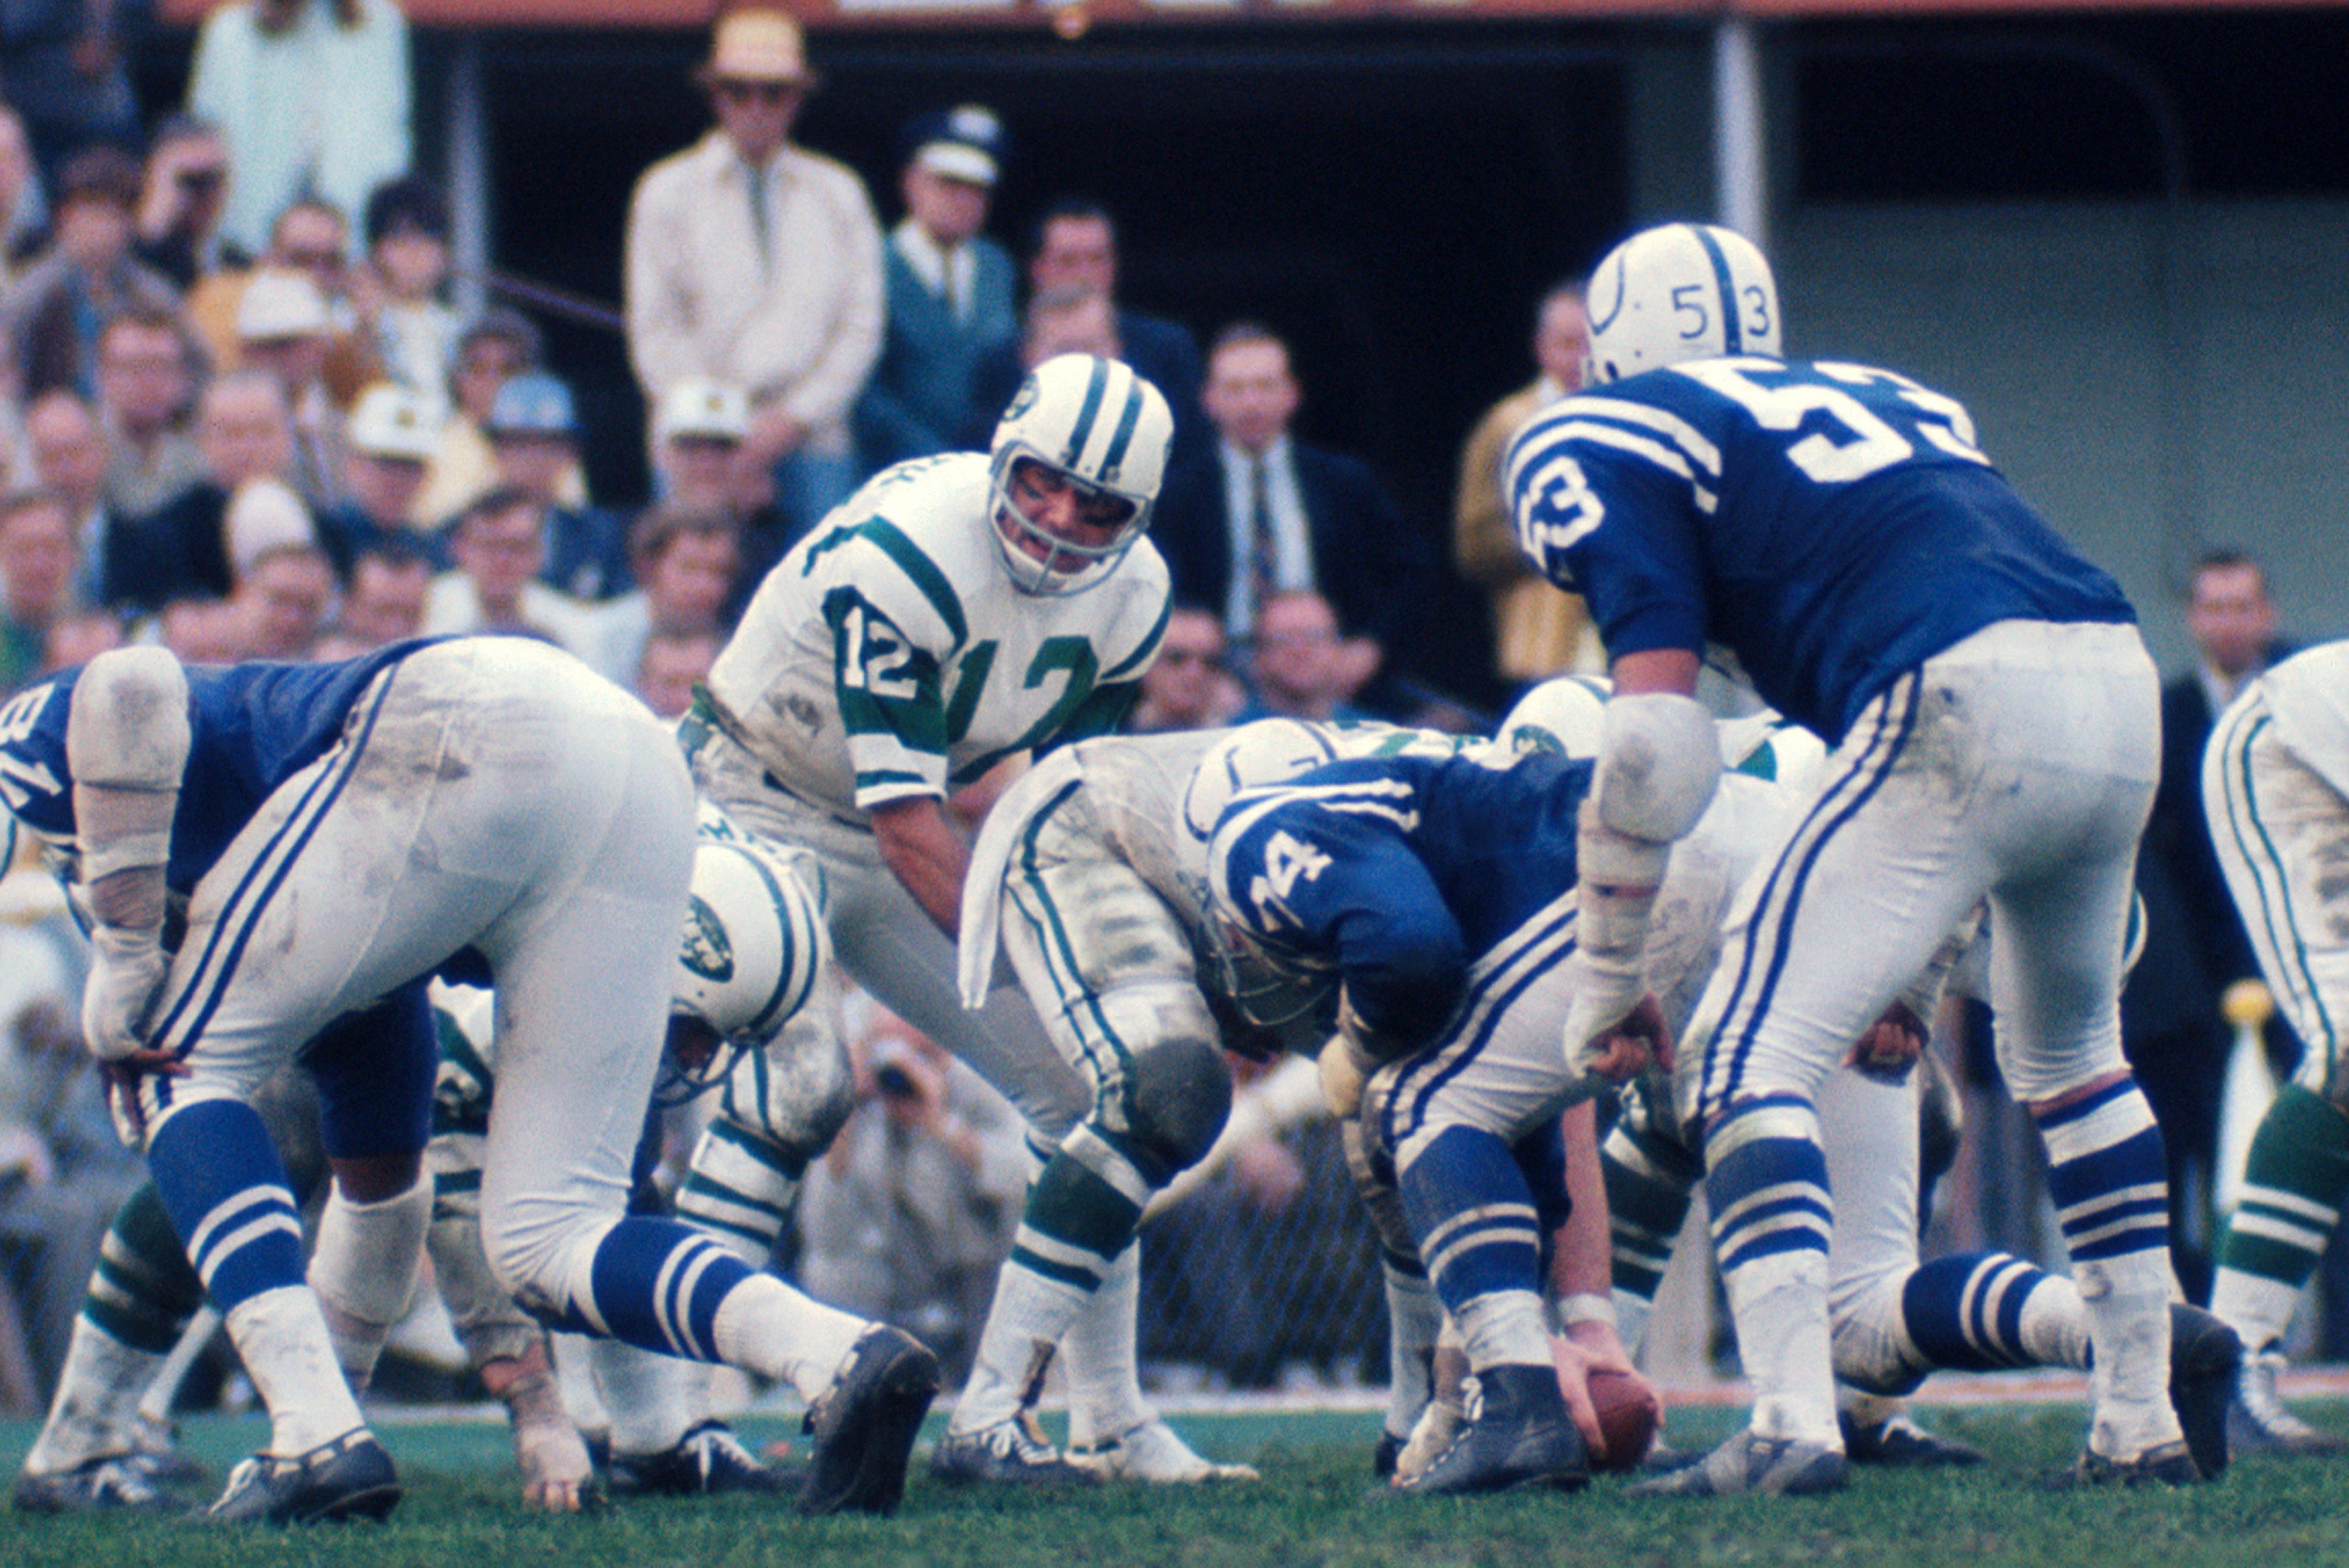 Joe Namath guaranteed victory for the New York Jets over the much fancied Baltimore Colts and delivered on his promise